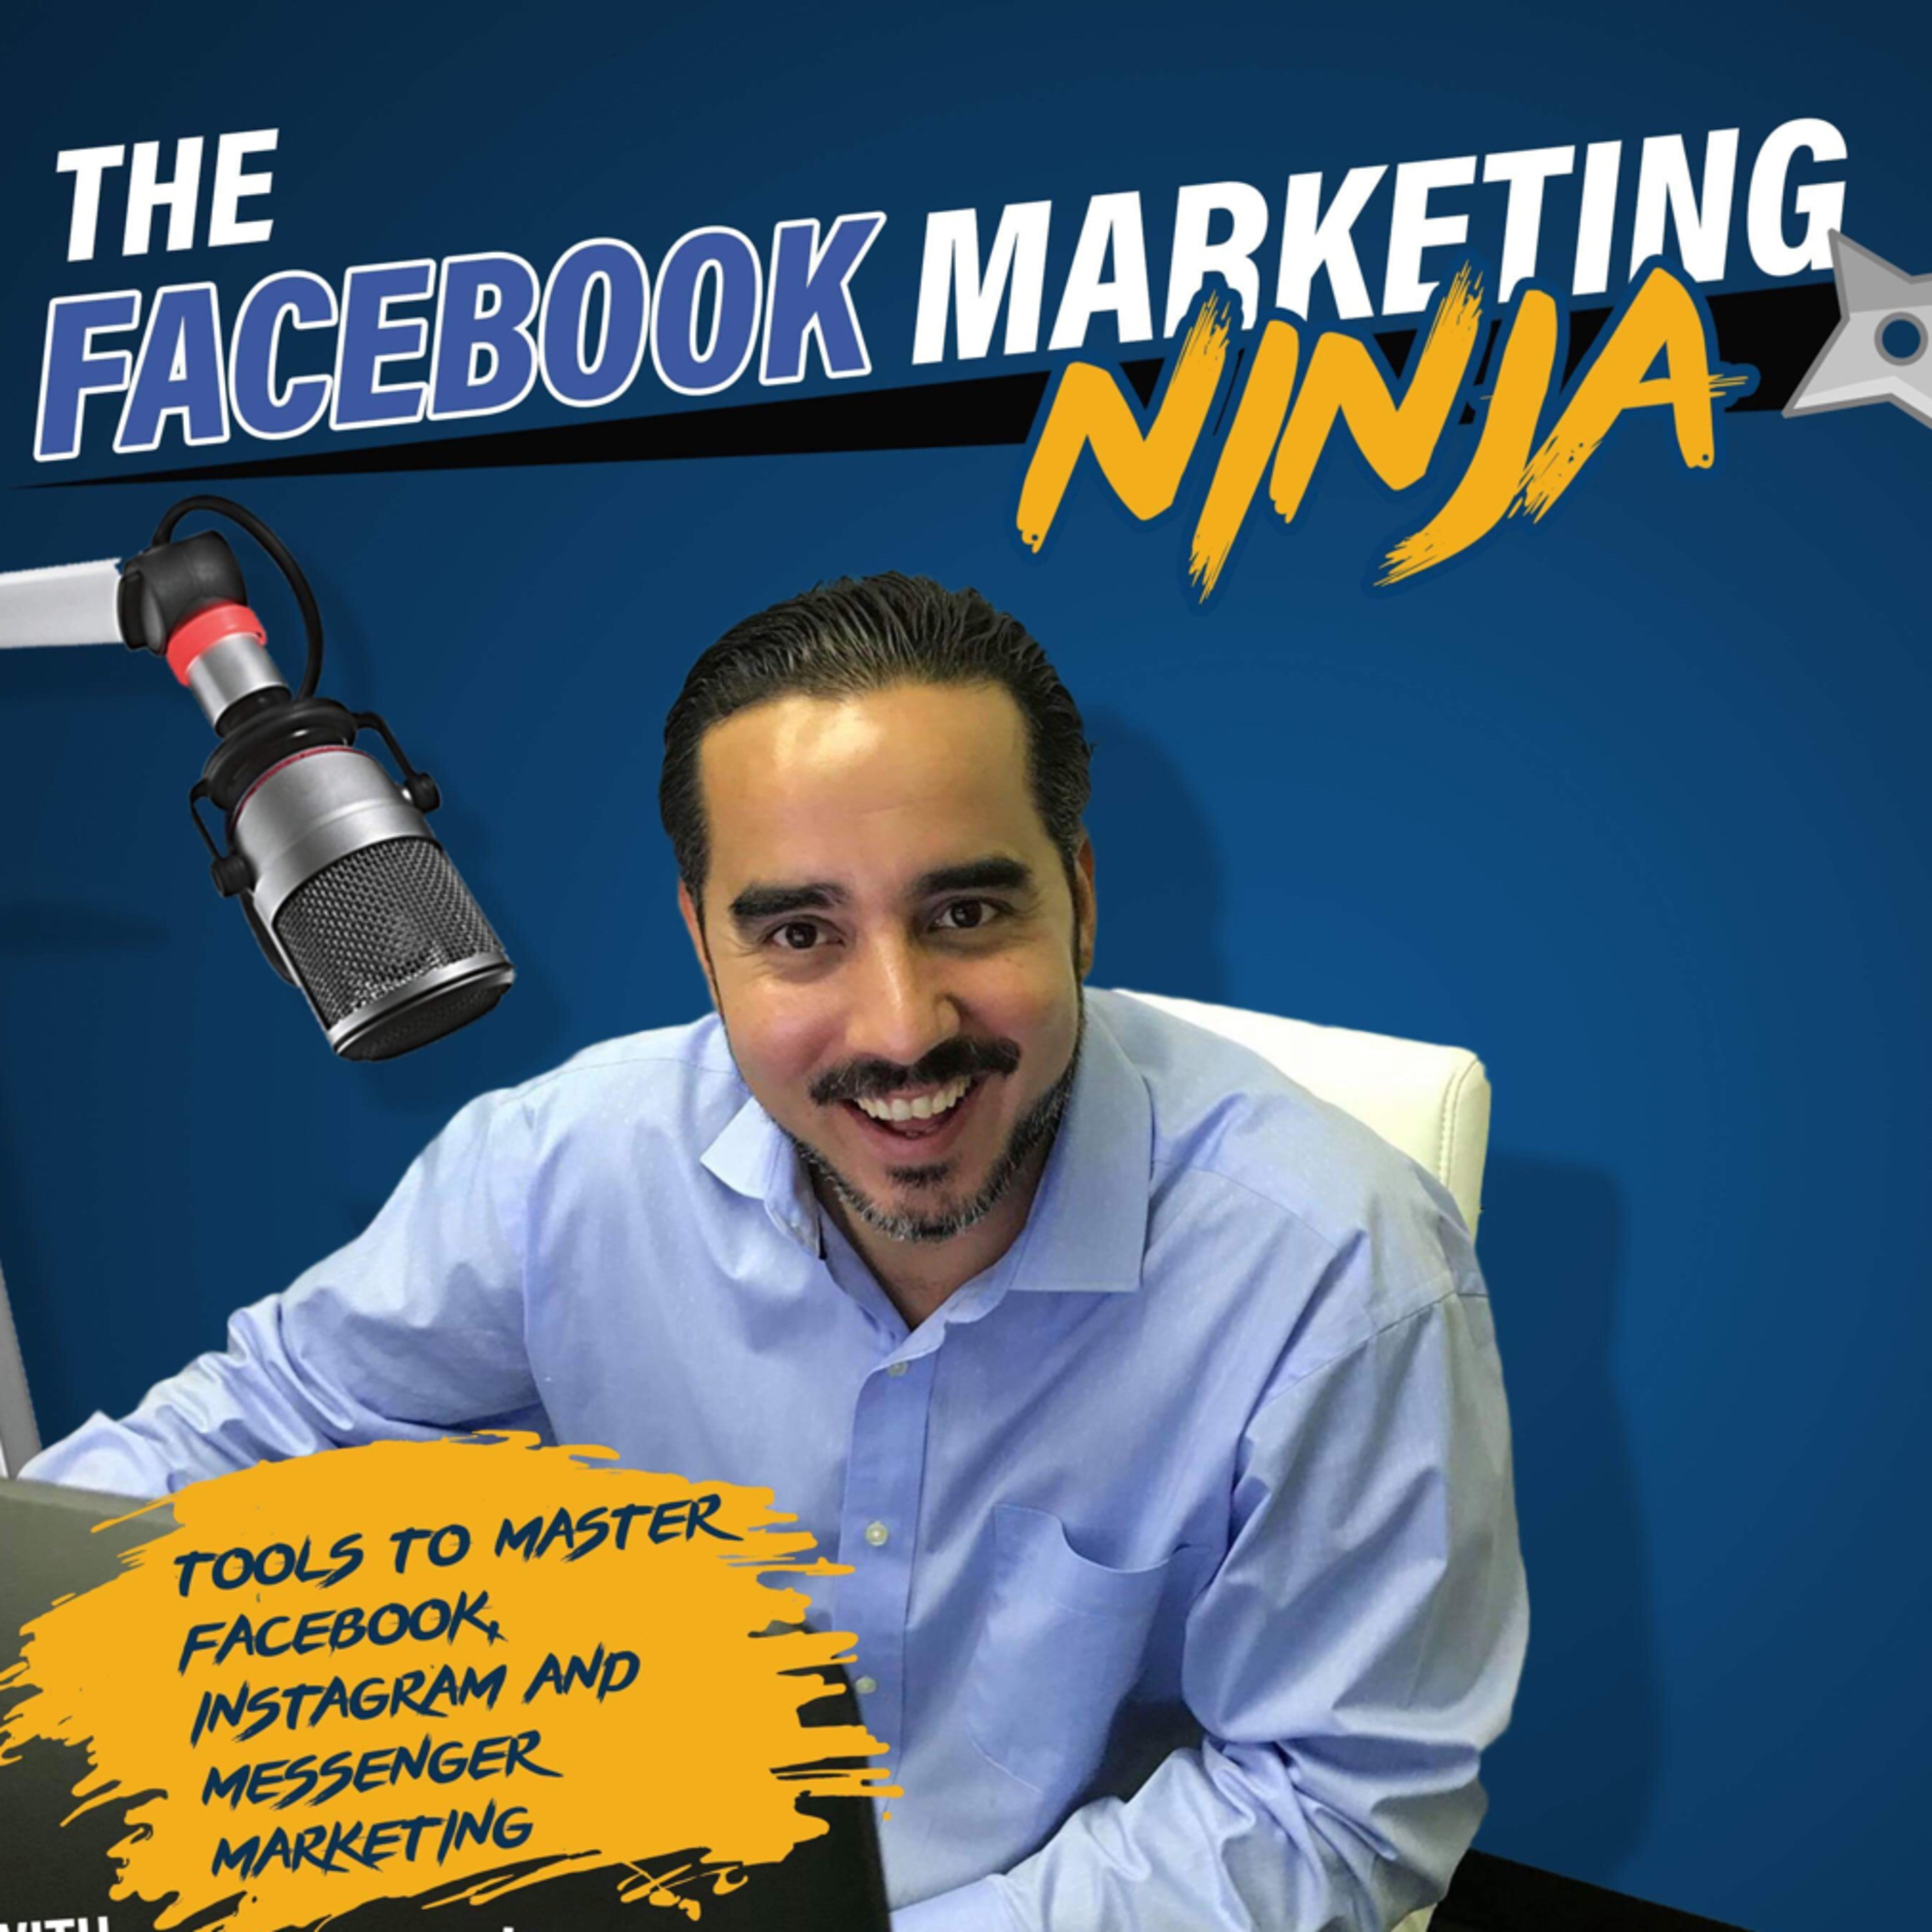 How to Use Facebook Messenger to Grow Your Business